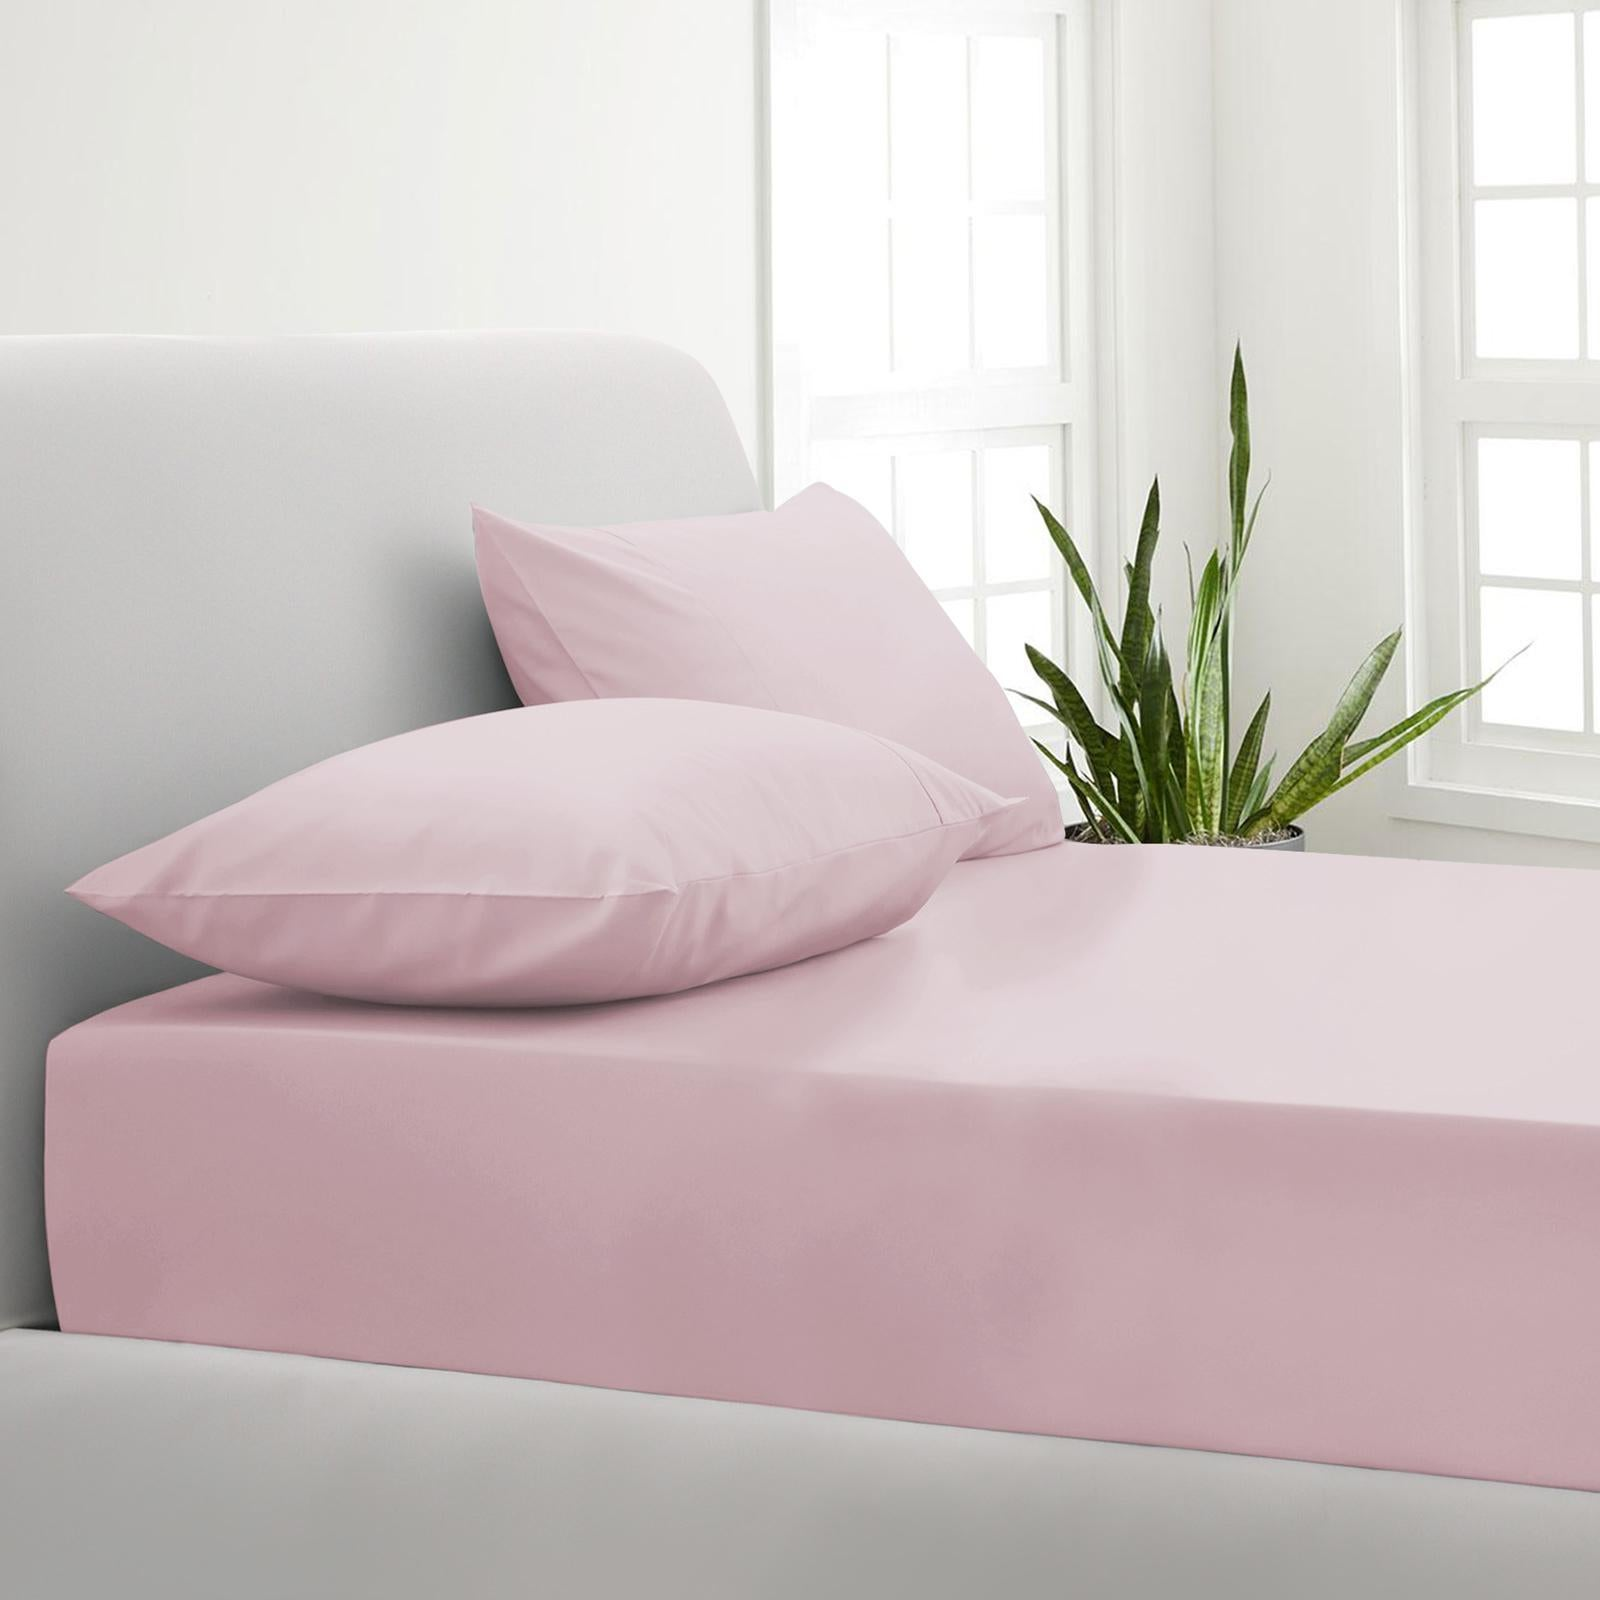 Park Avenue 1000tc Cotton Blend Sheet Pillowcases Set Hotel Quality Bedding Single Blush Matt Blatt